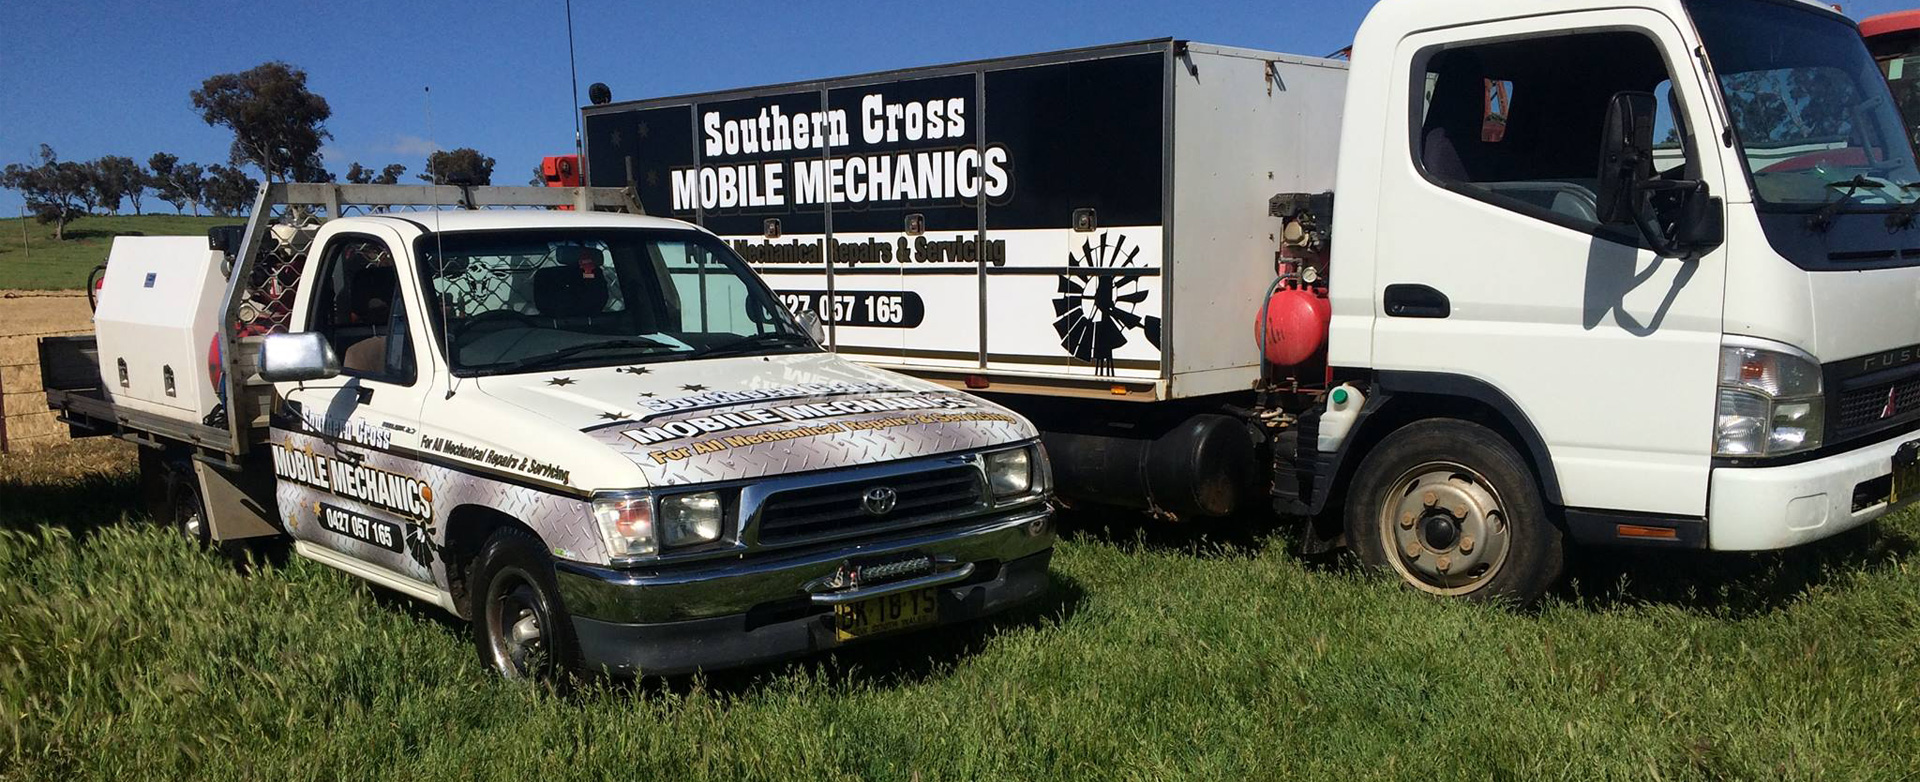 Southern Cross Mobile Mechanic Cootamundra